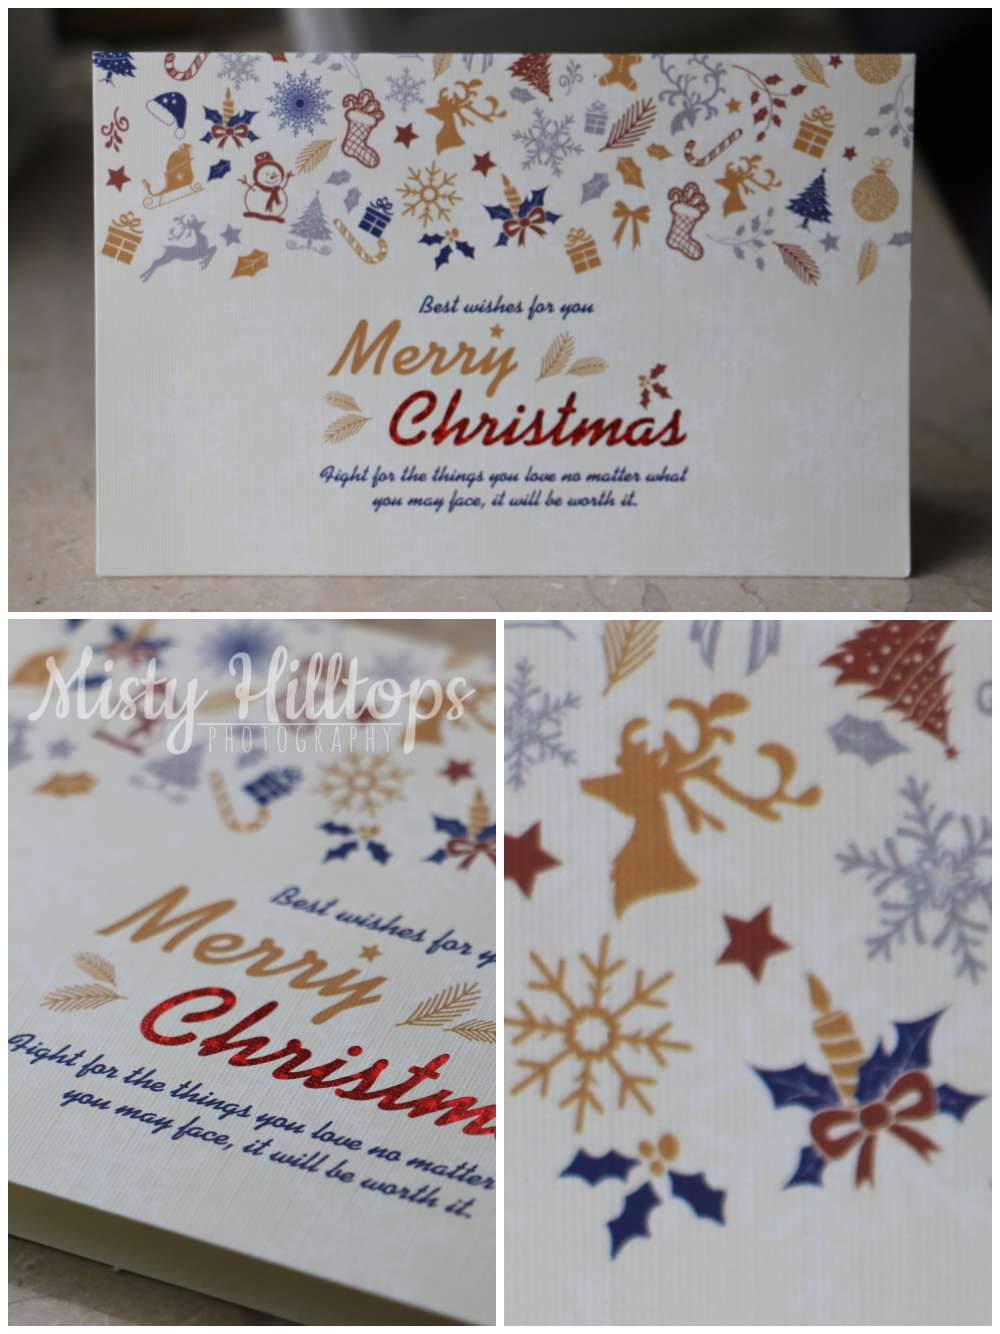 161222 christmascard